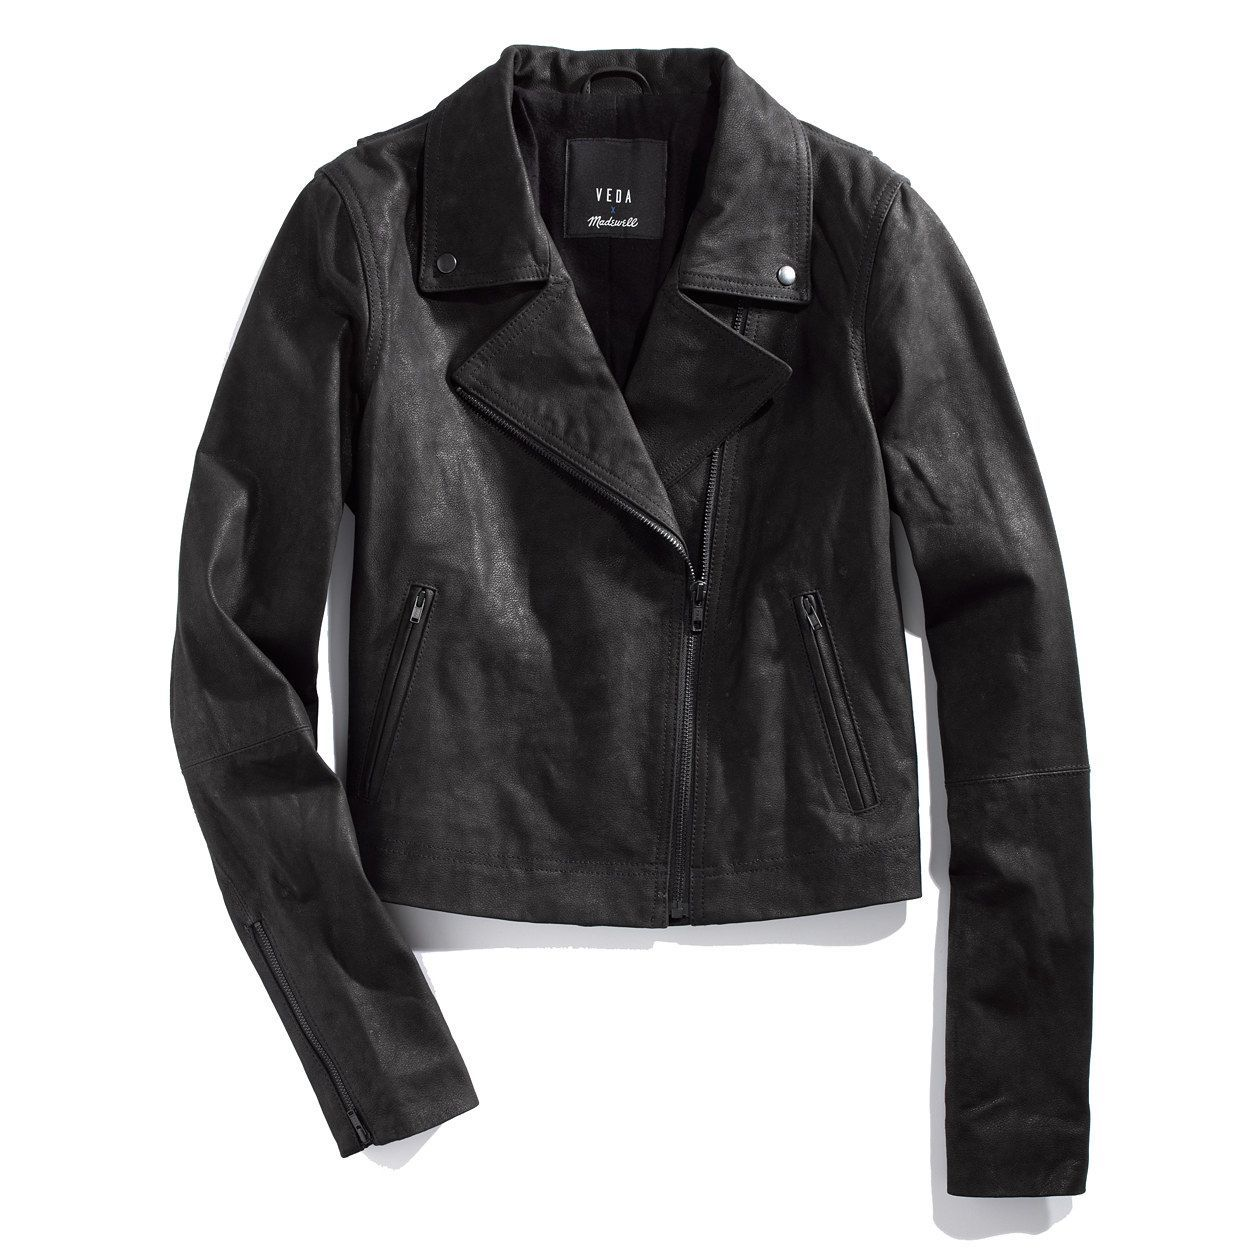 Veda¿ & Madewell Leather Motorcycle Jacket jackets